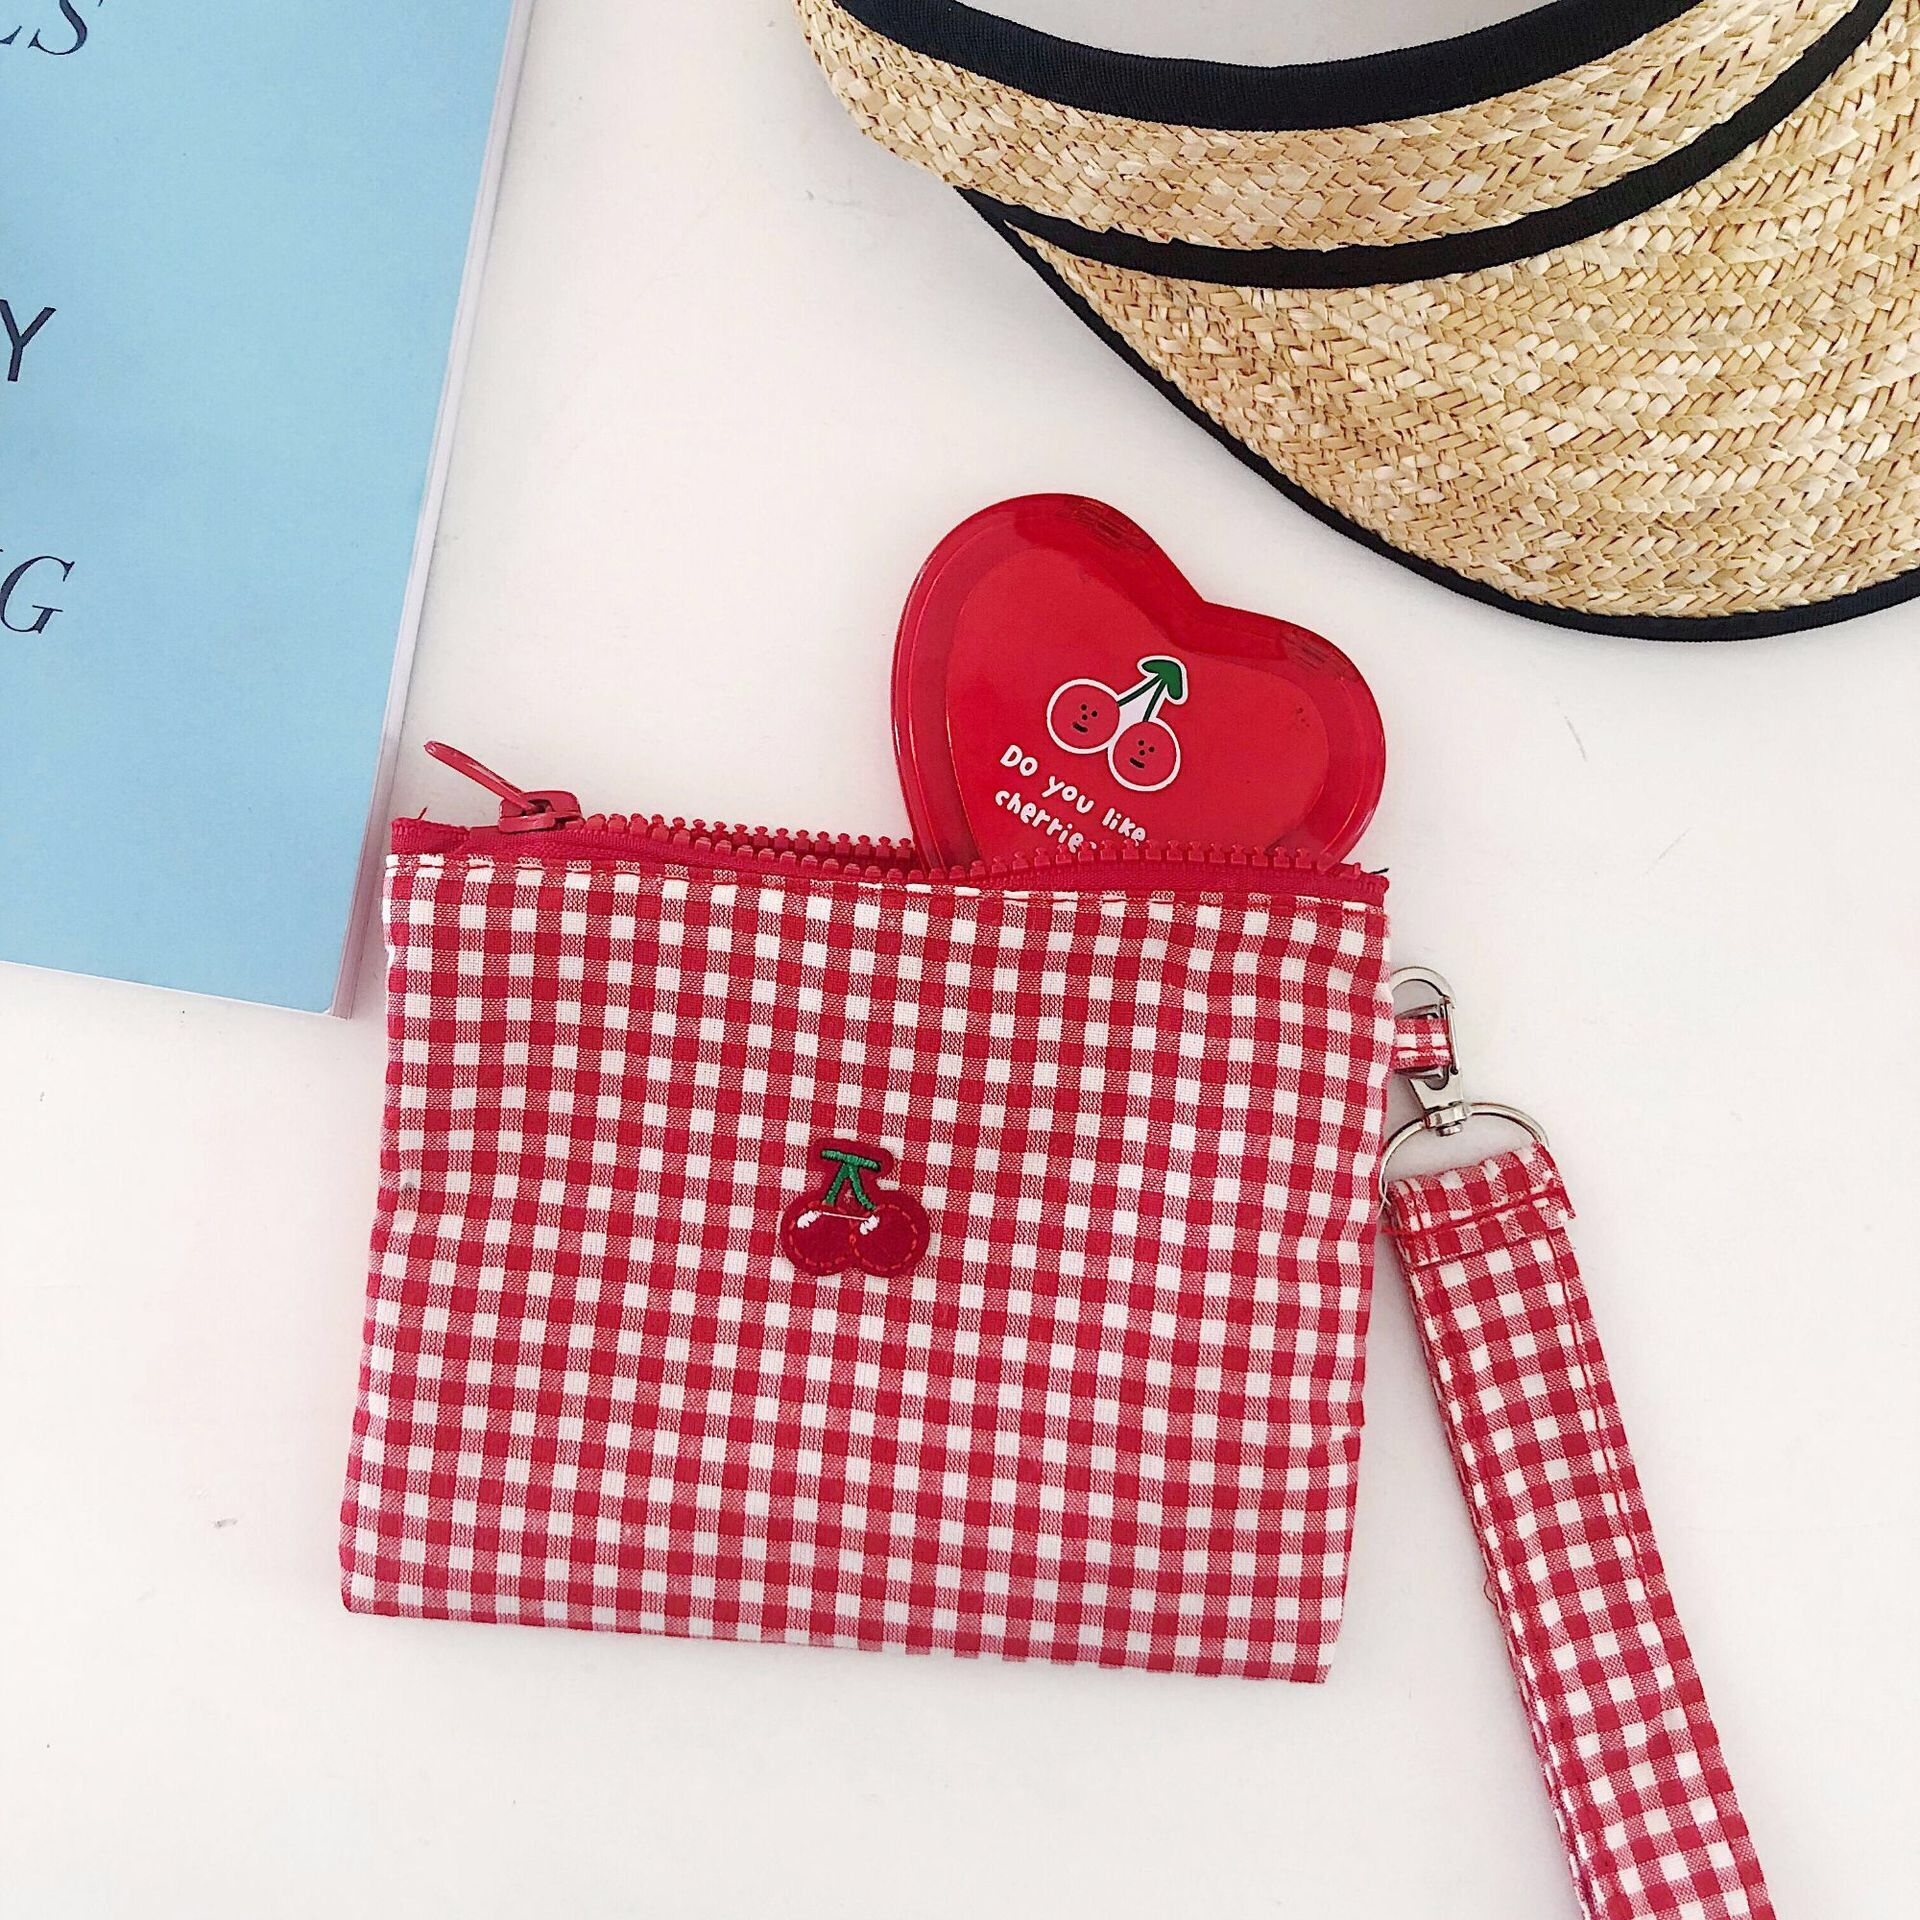 Handbag Women Should-Bags Make-Up-Bag-Case Fabric-String Plaid Cherry Large-Capacity